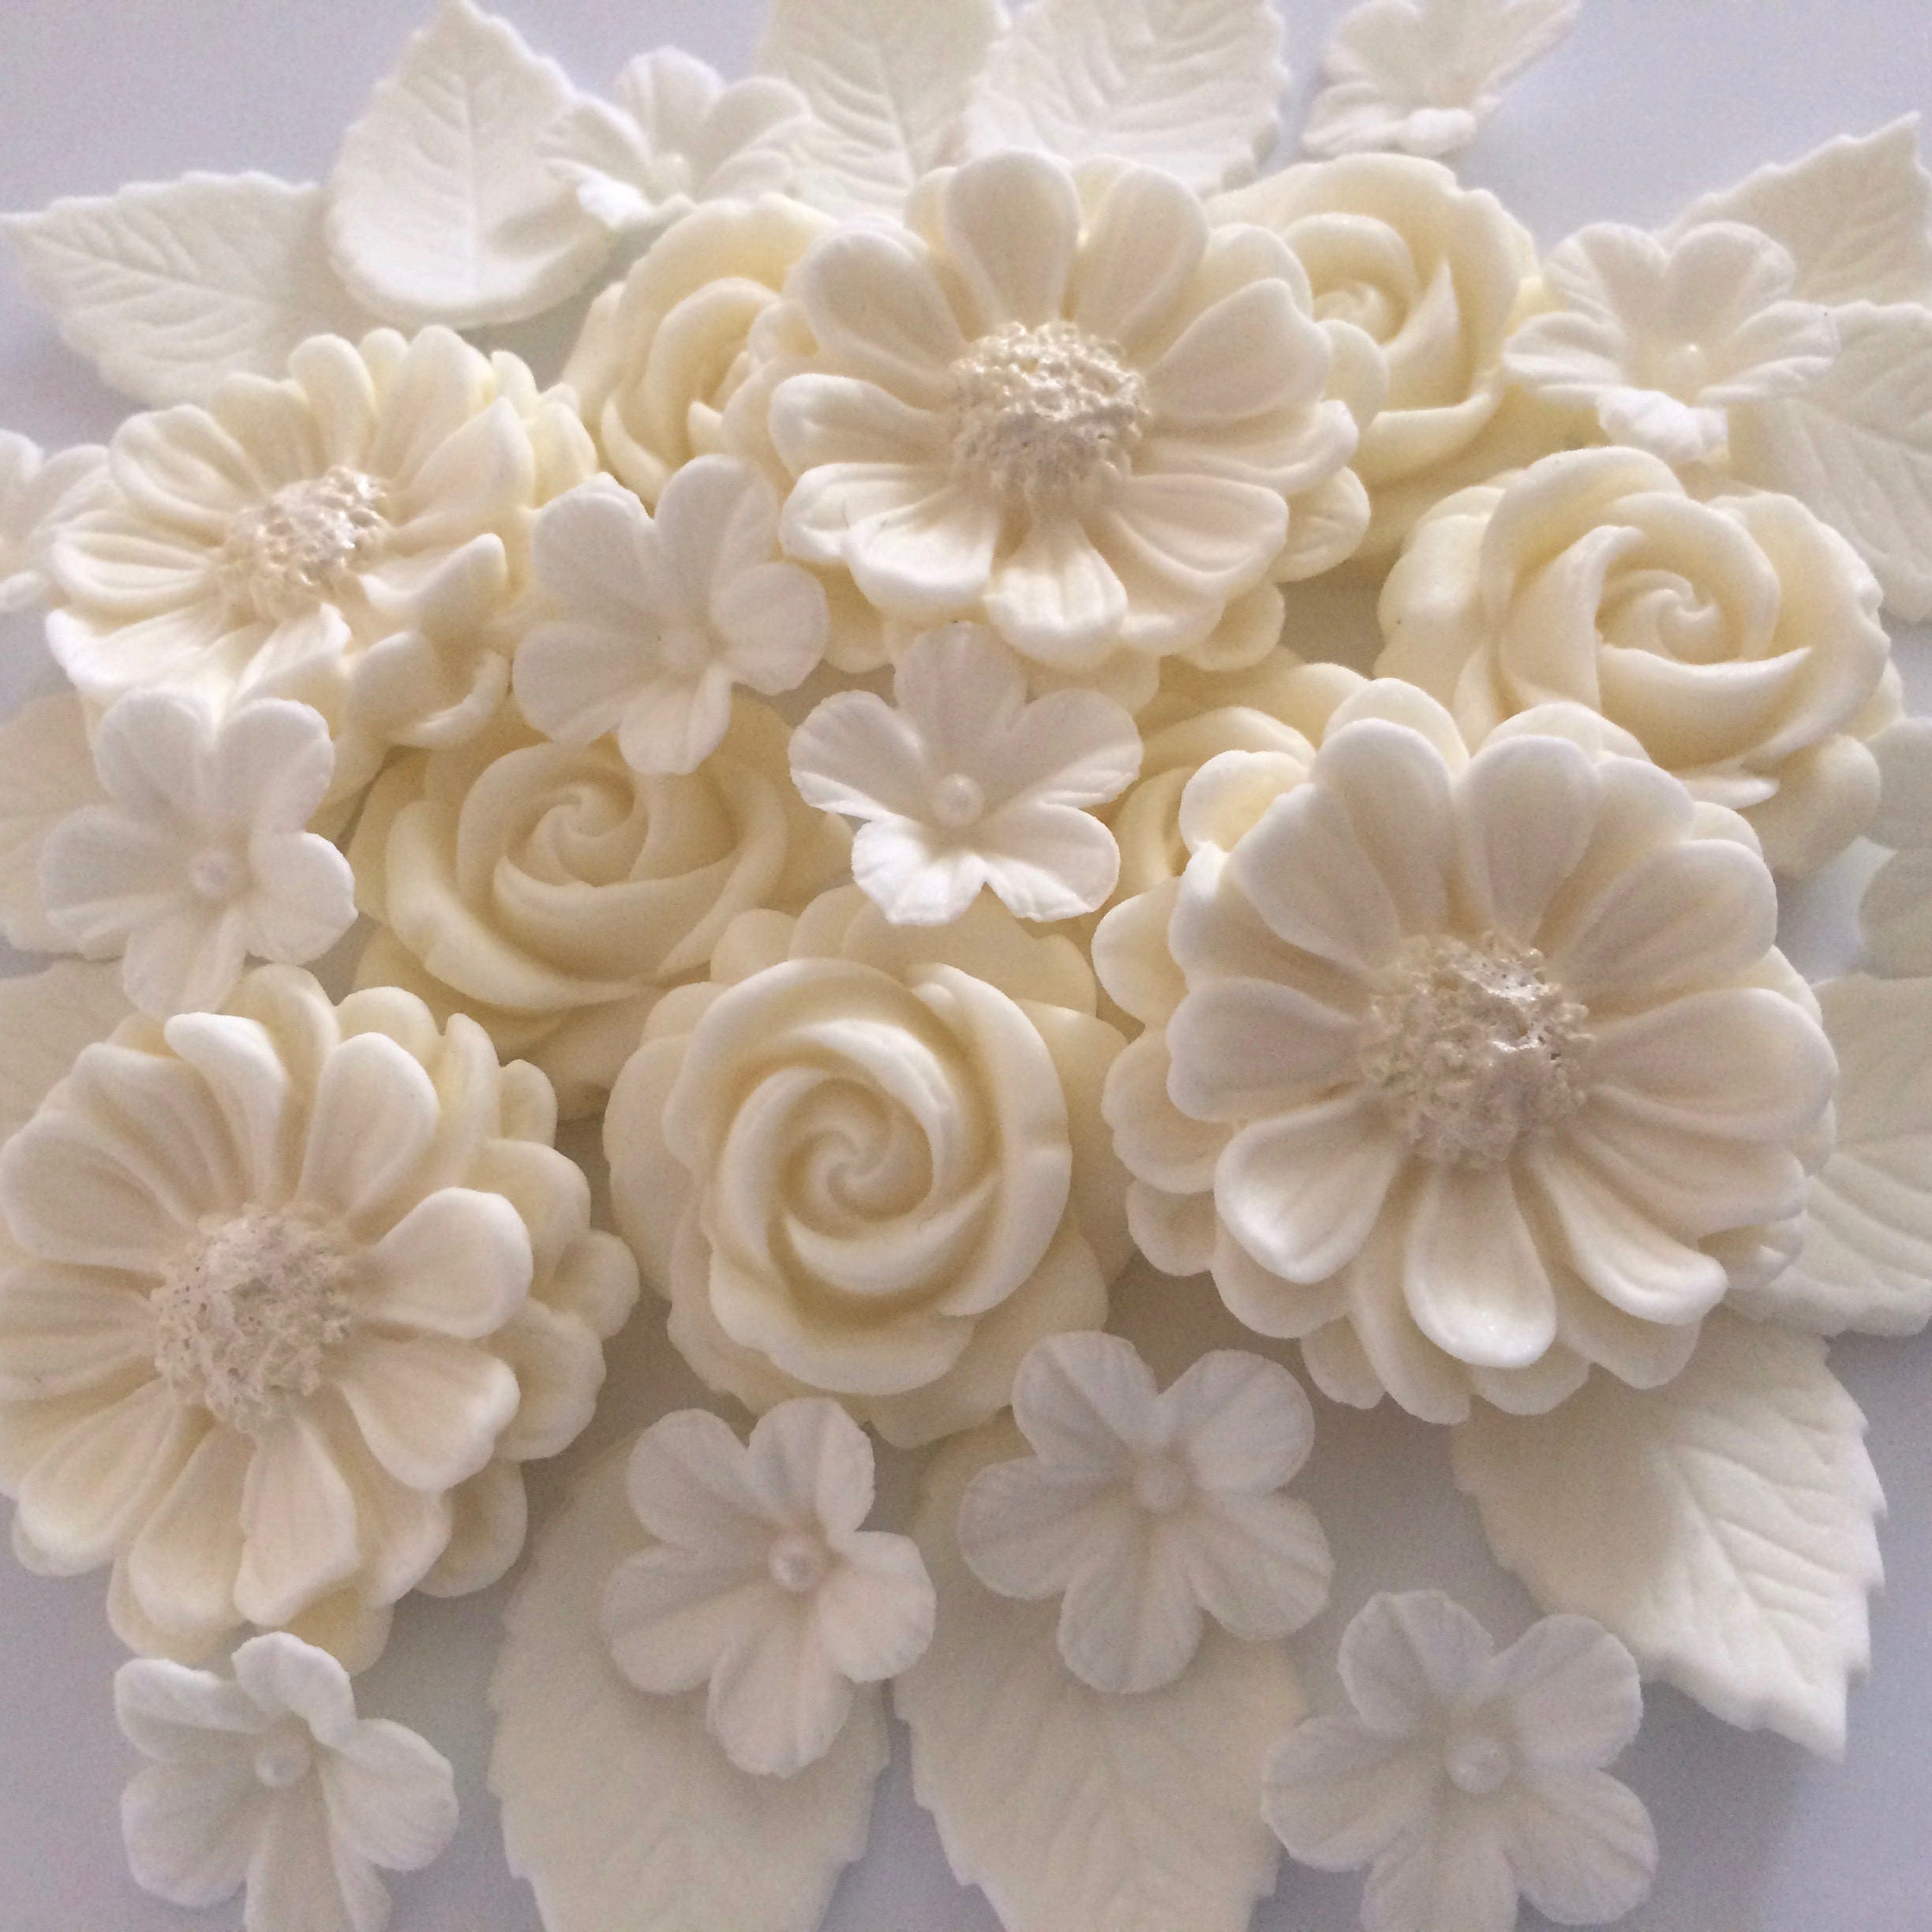 Wedding Cake Flowers Edible: IVORY ROSE BOUQUET Edible Sugar Flowers Wedding Cupcake Cake